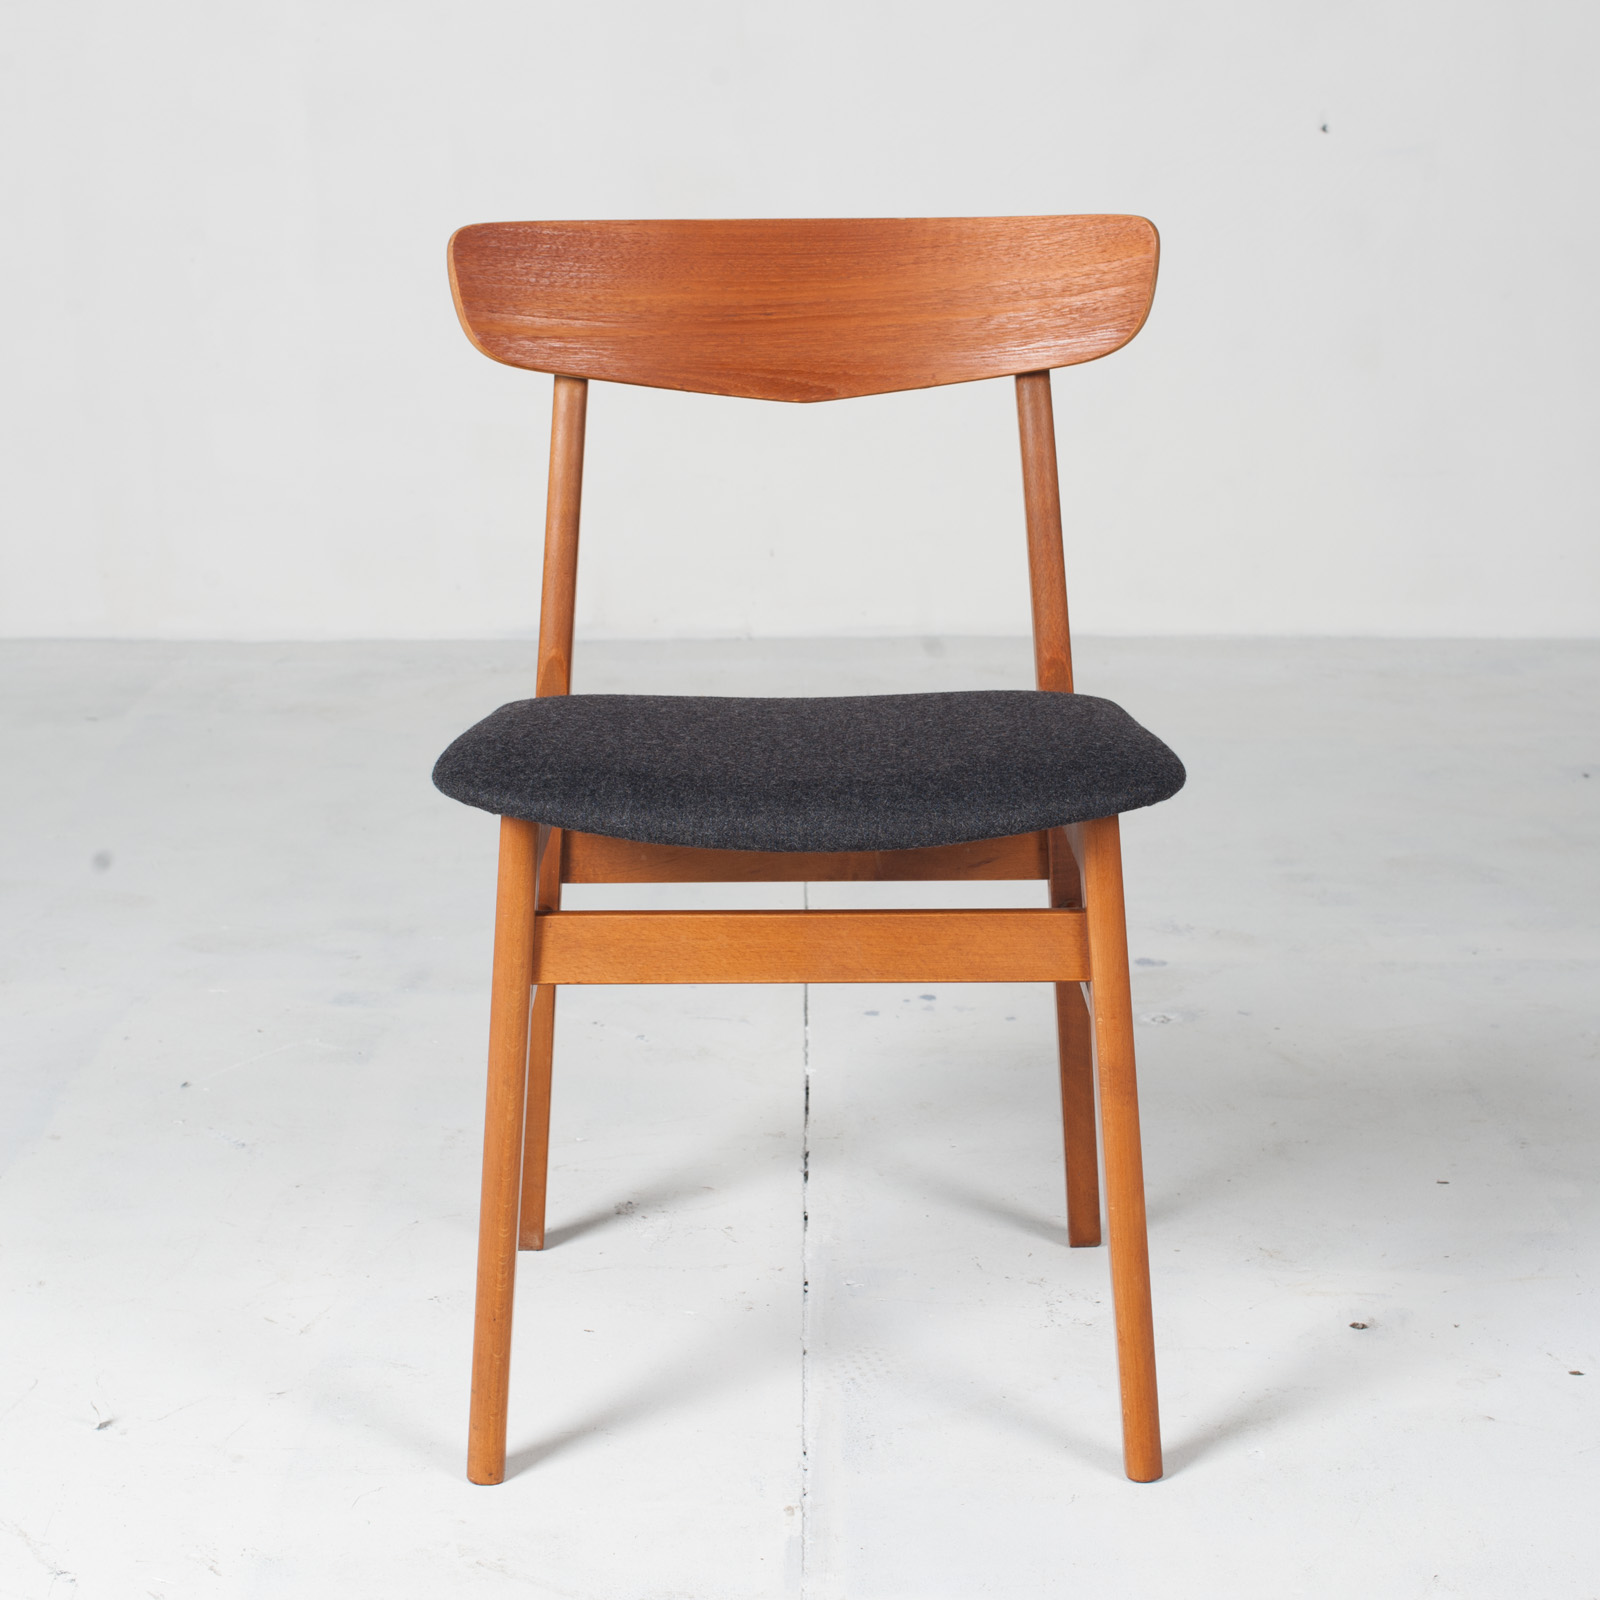 V Back Dining Chairs By Farstrup In Teak And New Navy Upholstery 1960s Denmark 02